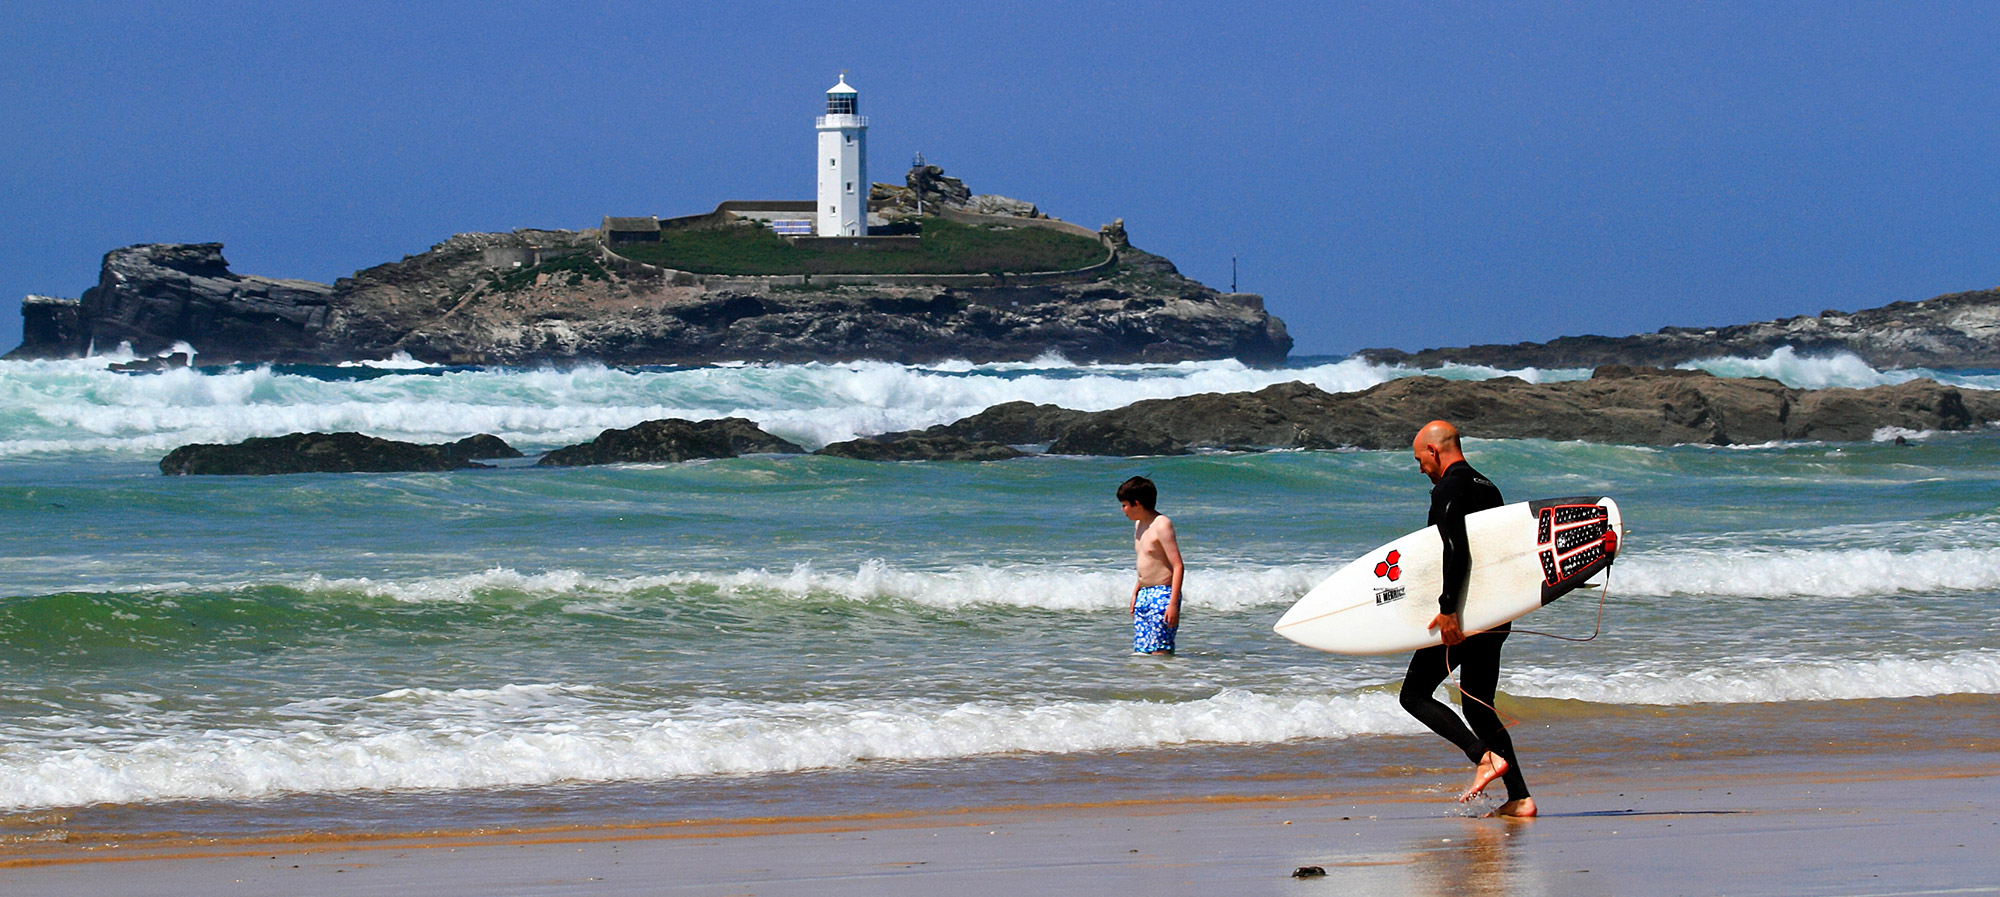 Surfers at Godrevy Beach near Hayle